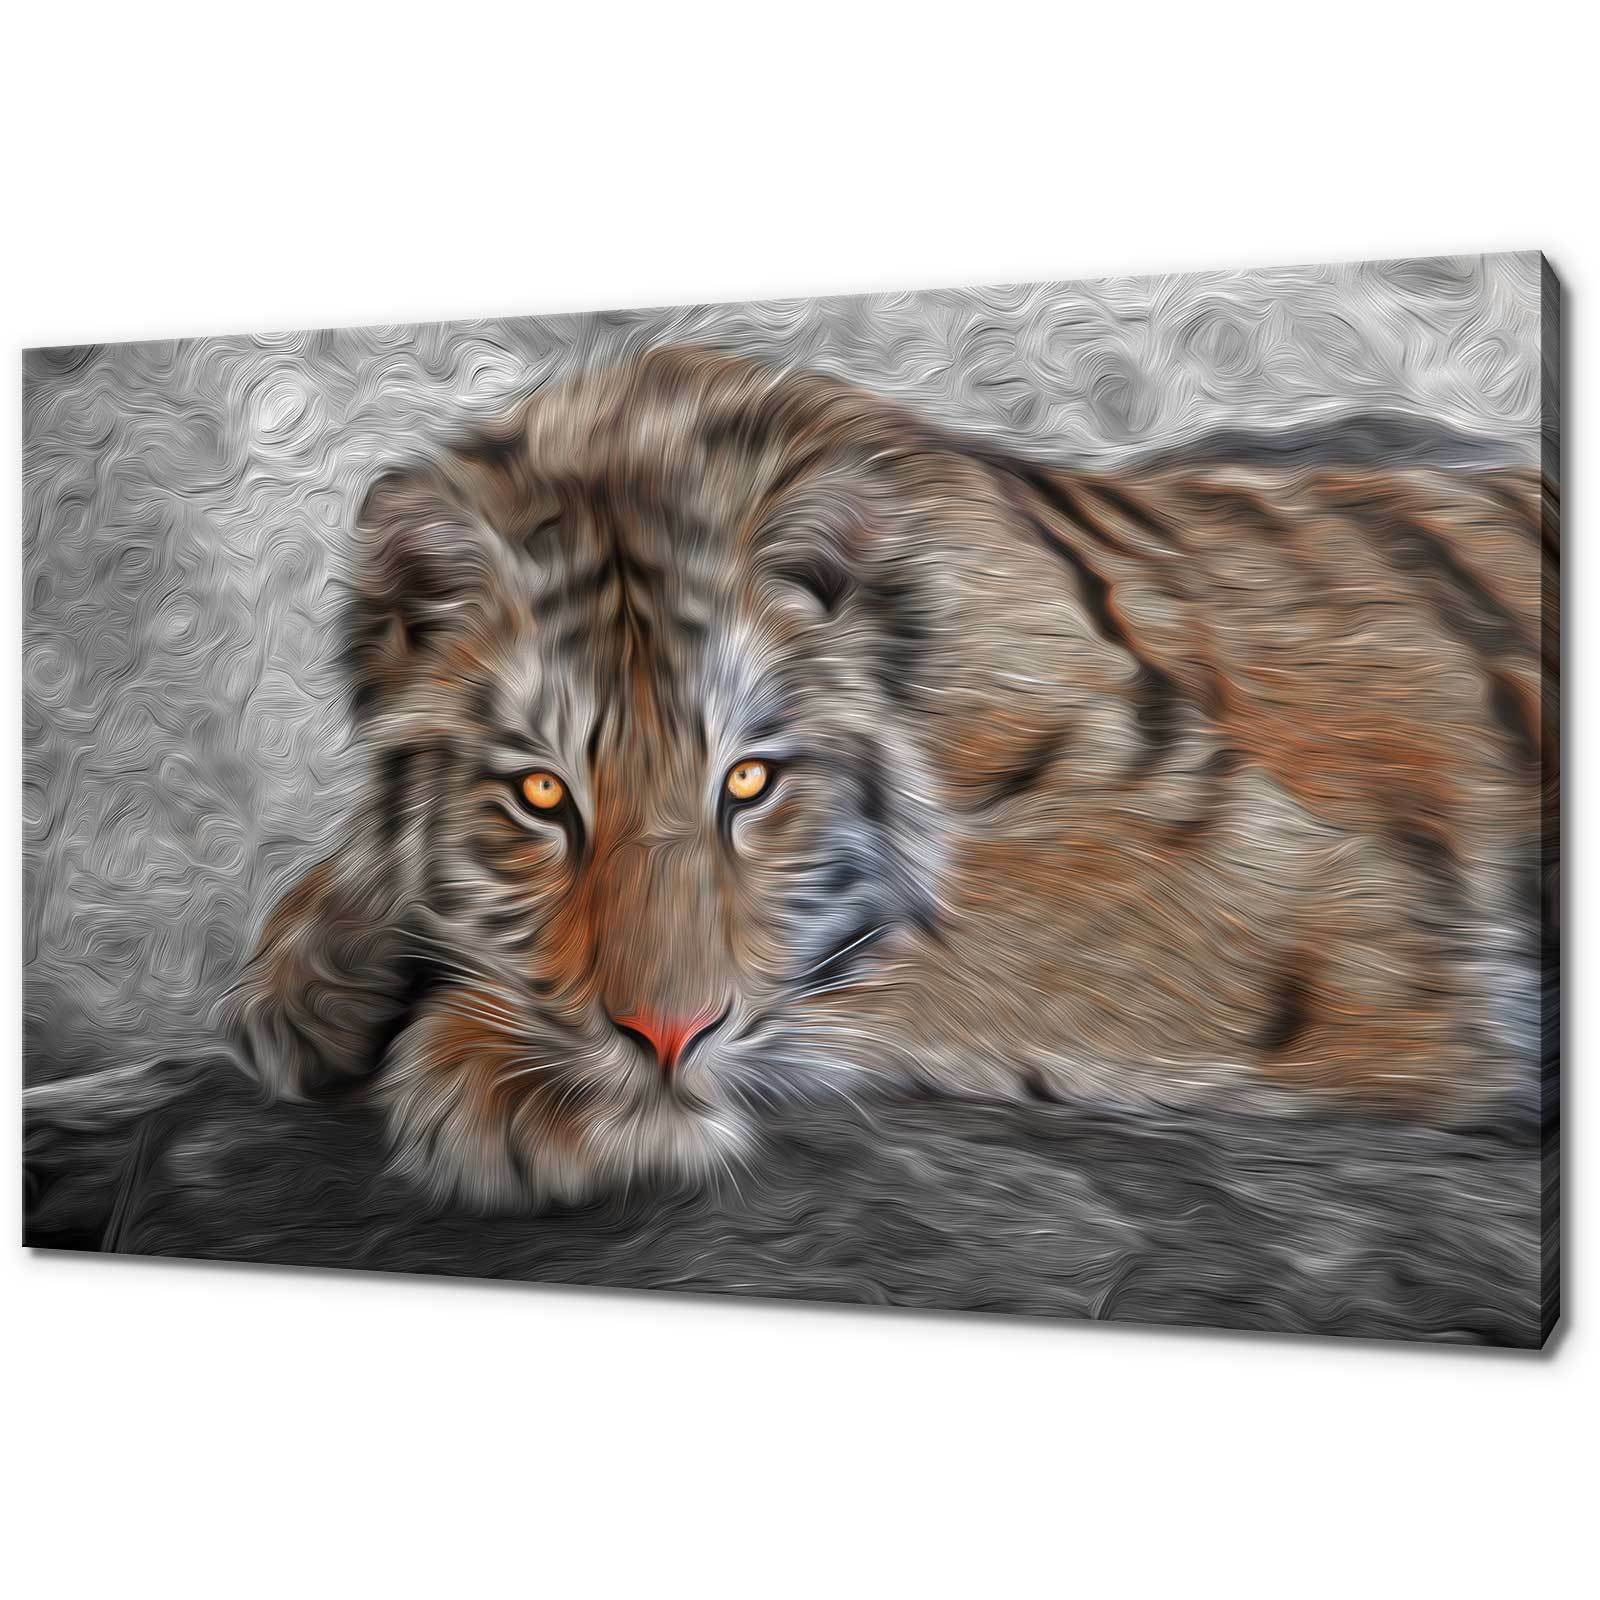 Tigre du Bengale Abstrait Toile Impression Photo Wall Art Home Decor livraison gratuite